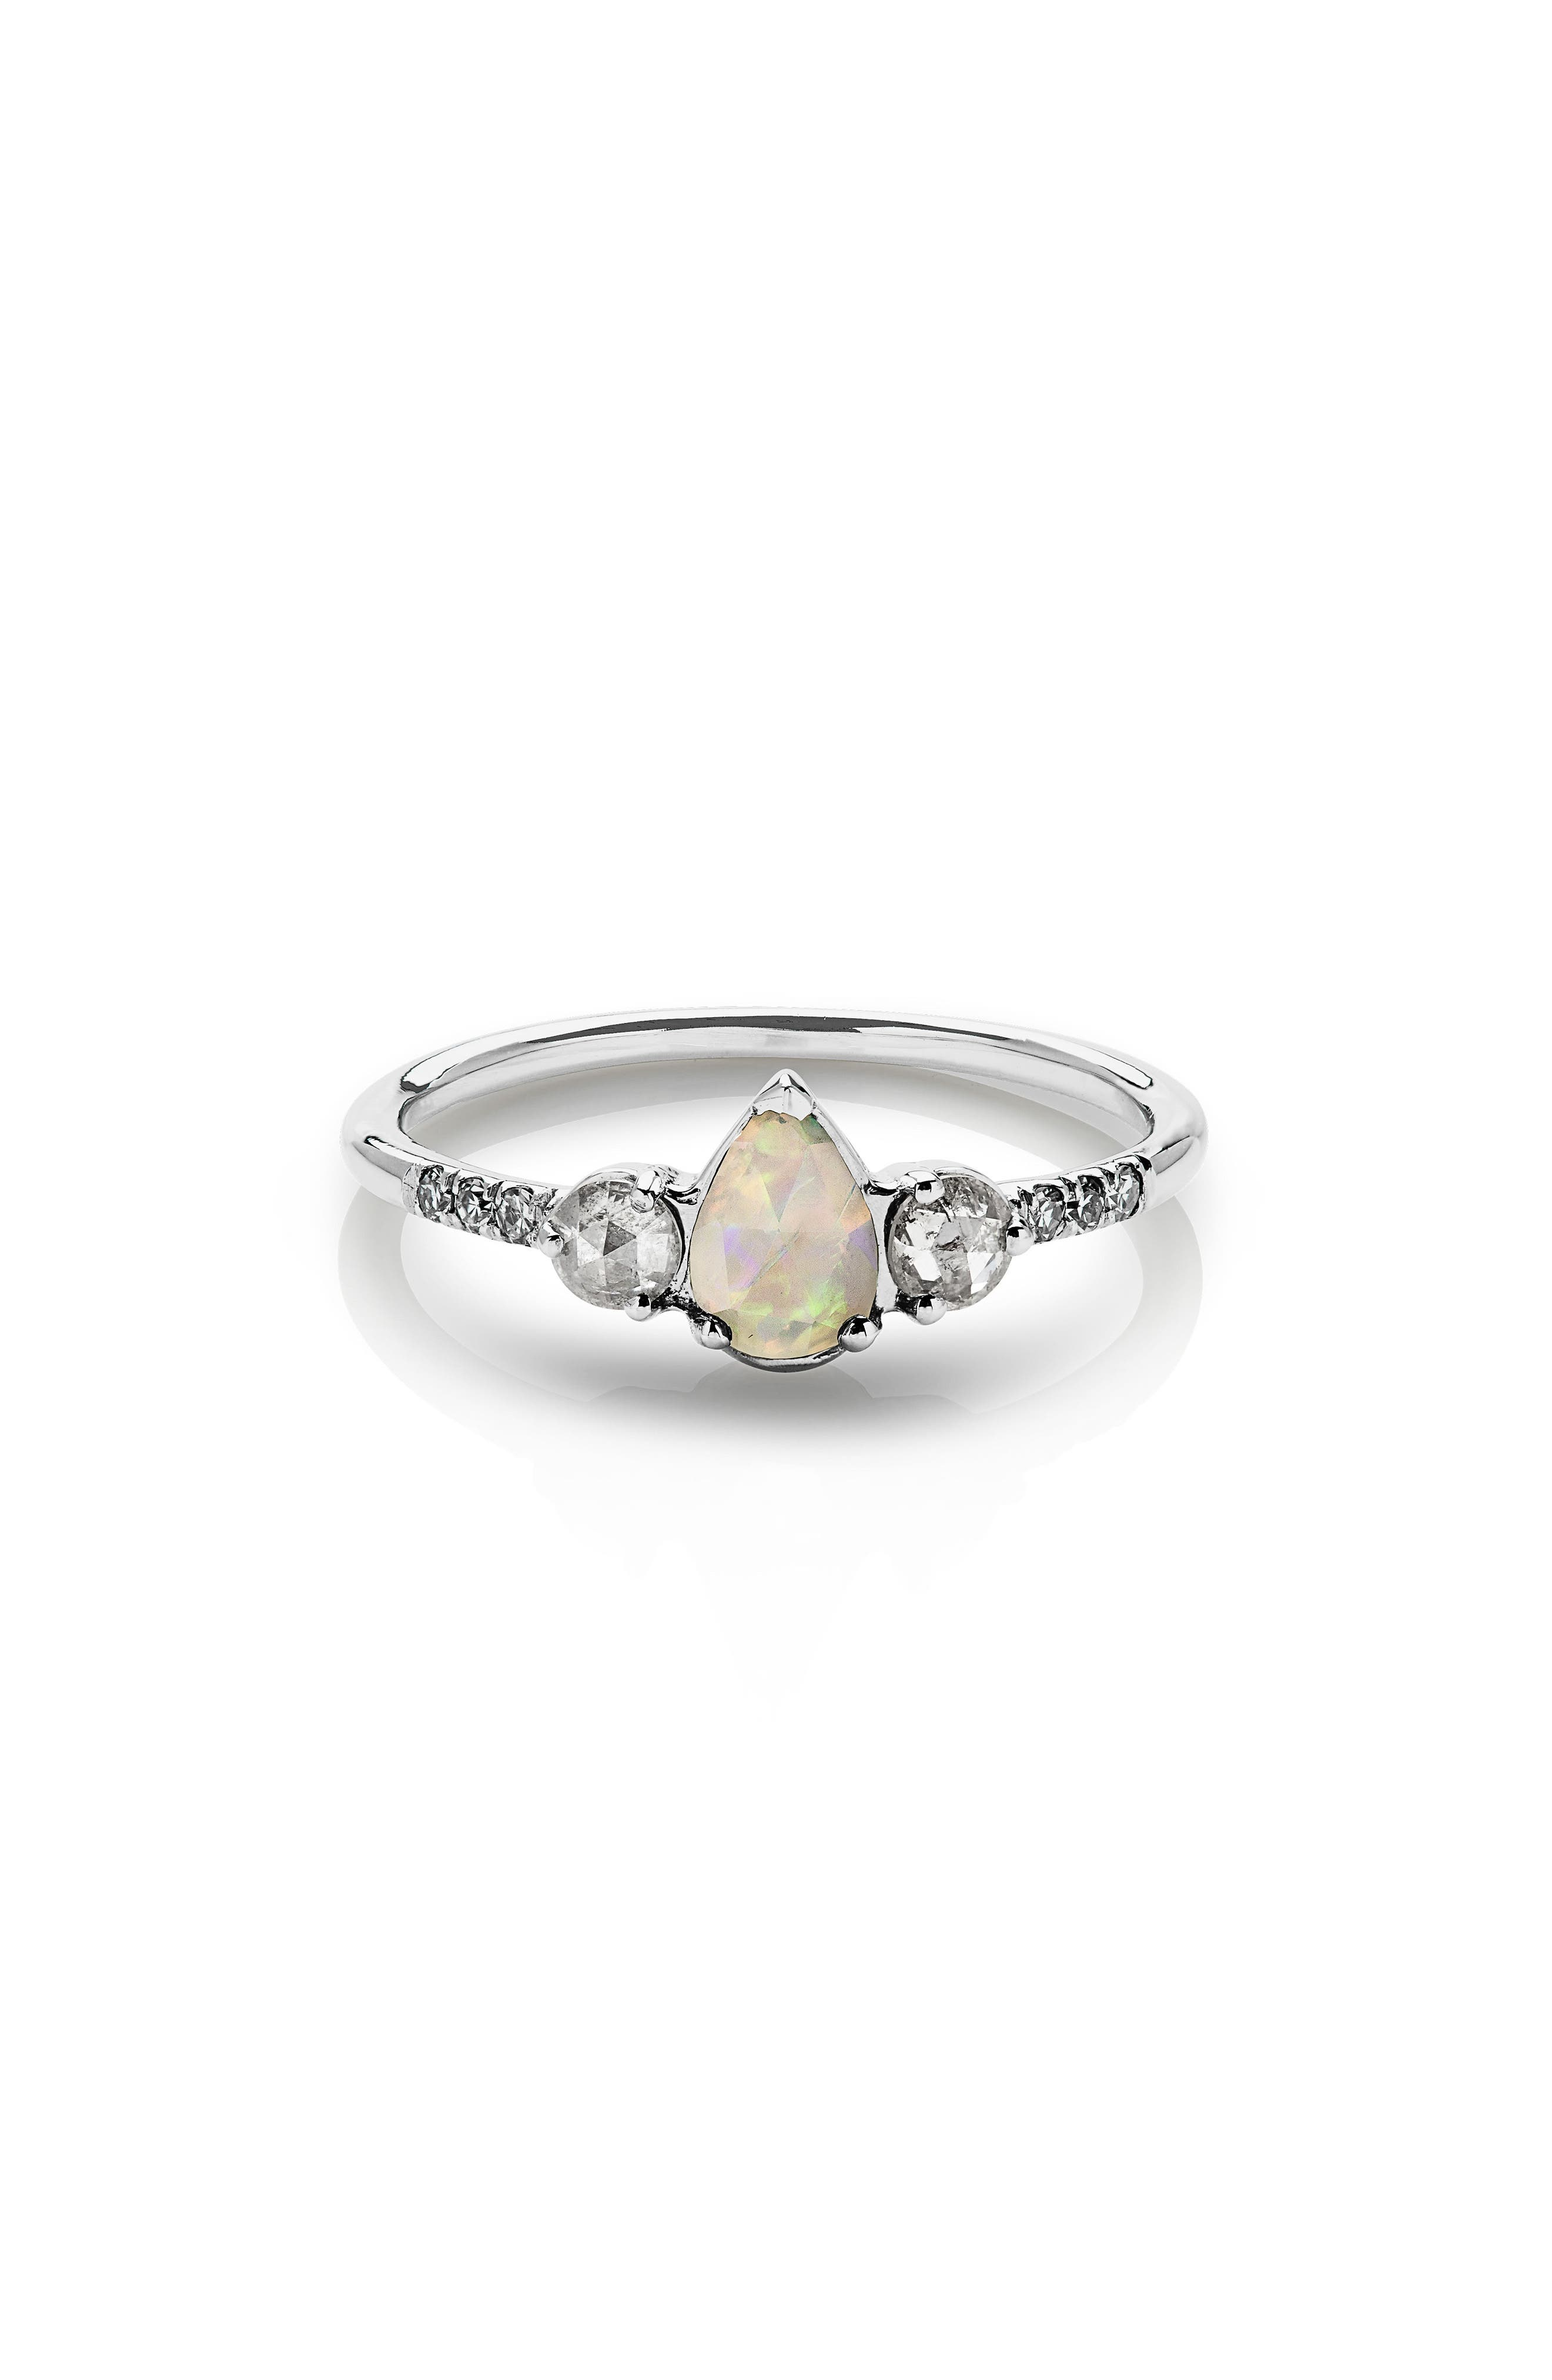 Radiance Opal & Diamond Ring,                         Main,                         color, White Gold